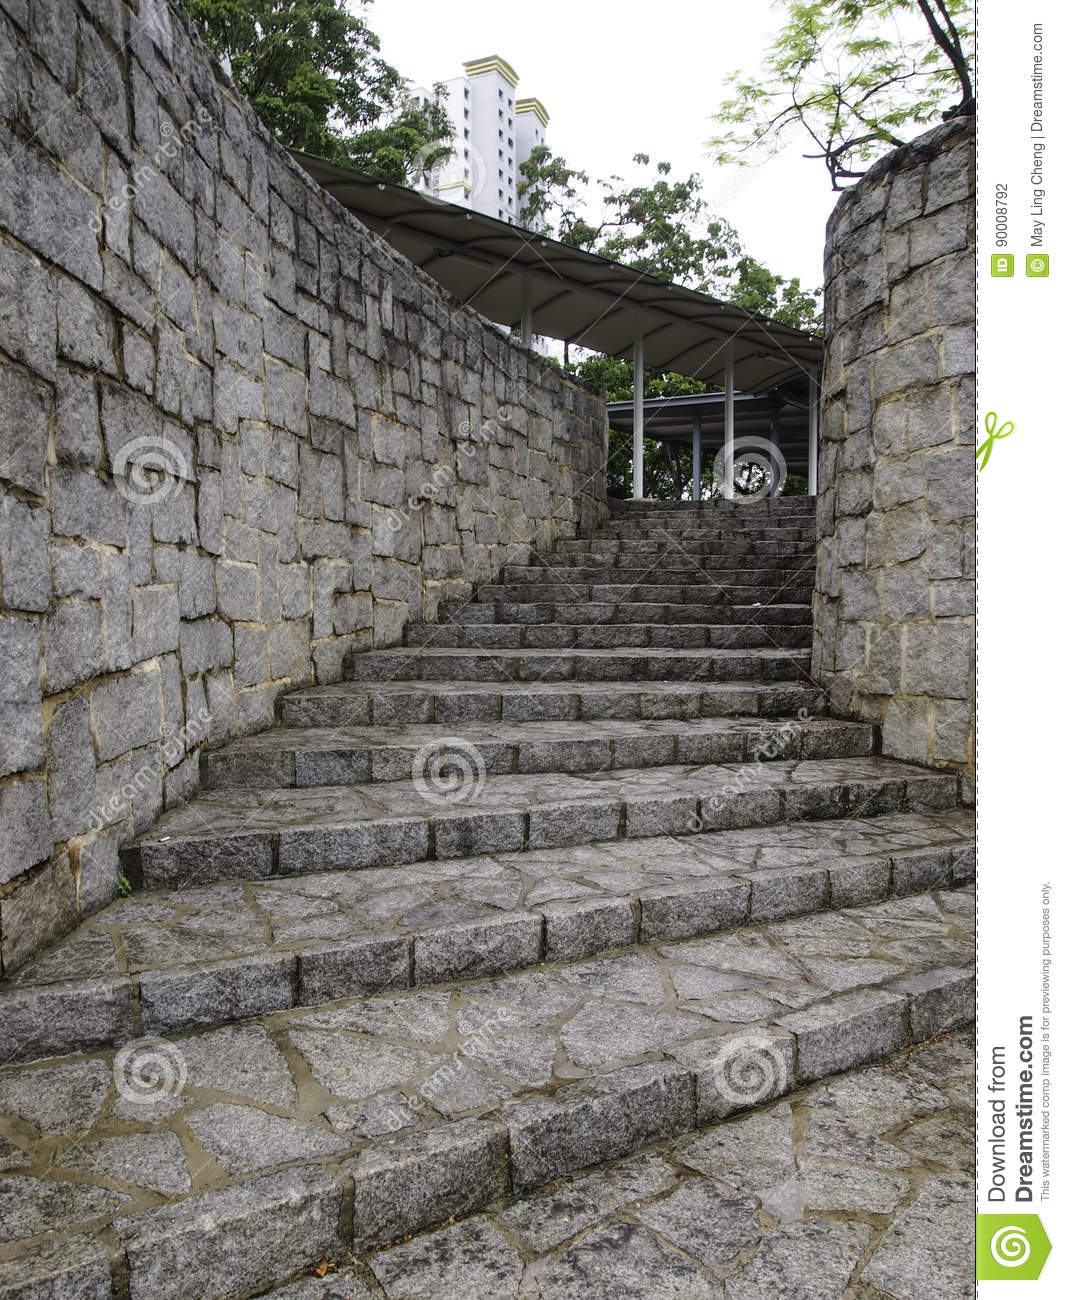 Download Curve stone stairway stock photo. Image of wall, steps - 90008792